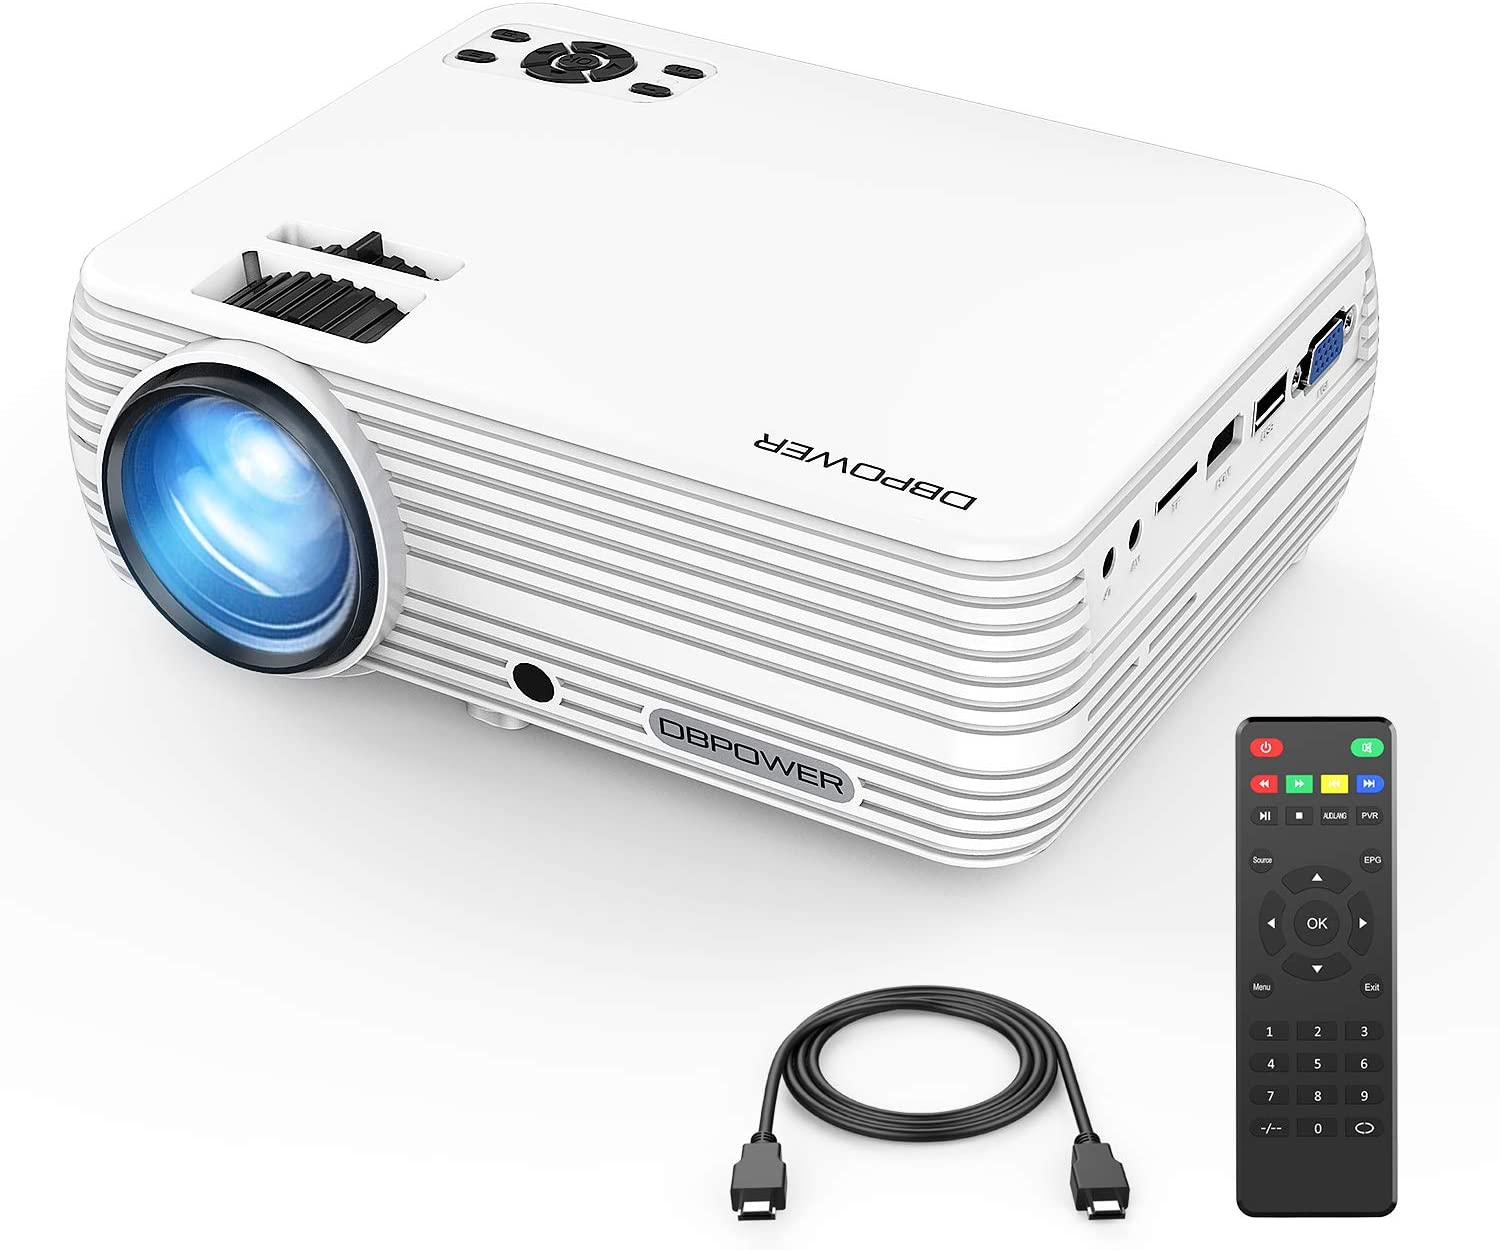 Mini Projector, DBPOWER Portable Projector 2400 Lumens 50,000 Hours LED Full HD 1080P Support Video Projector, Compatible with iPhone, ipad,AV, USB, ...